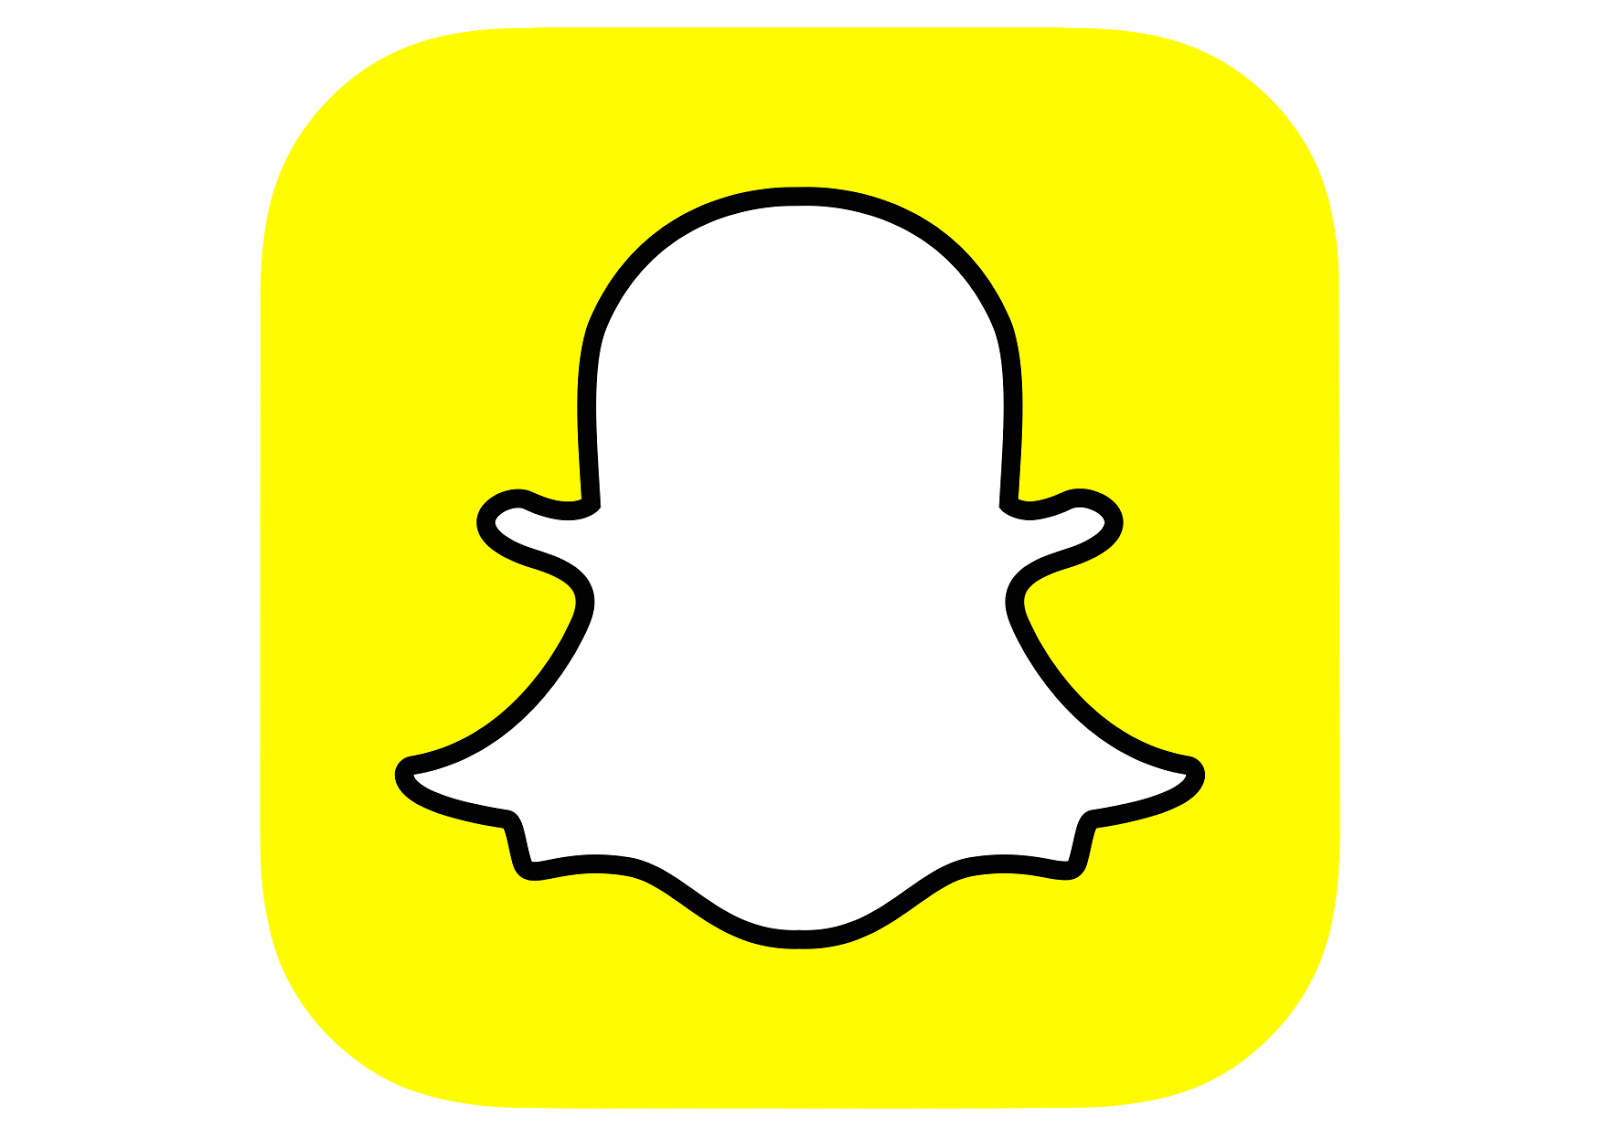 snapchat icon clipart clapping